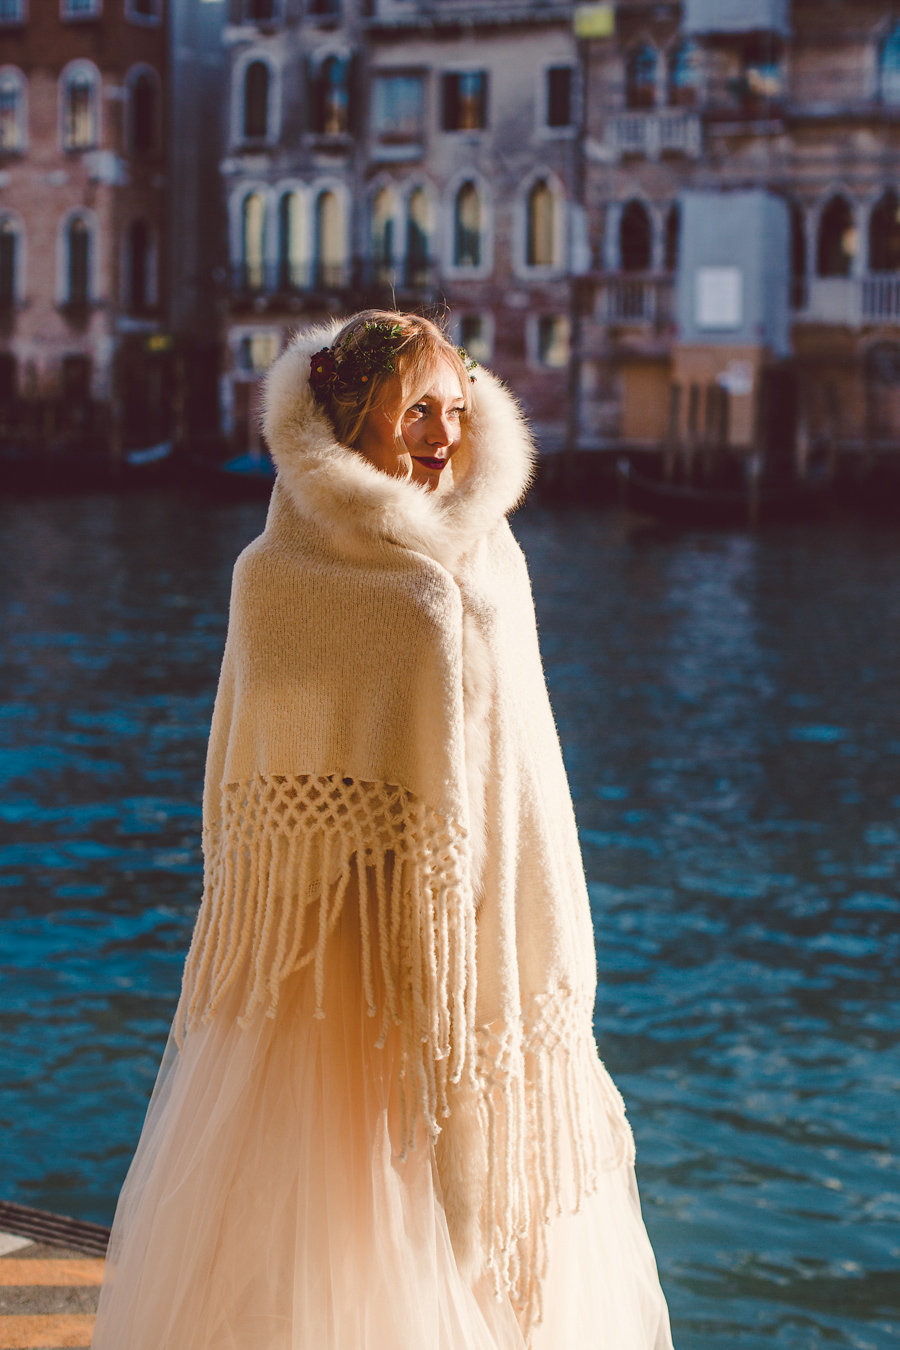 cover up with a warm piece with faux fur as it can be chilly in Venice